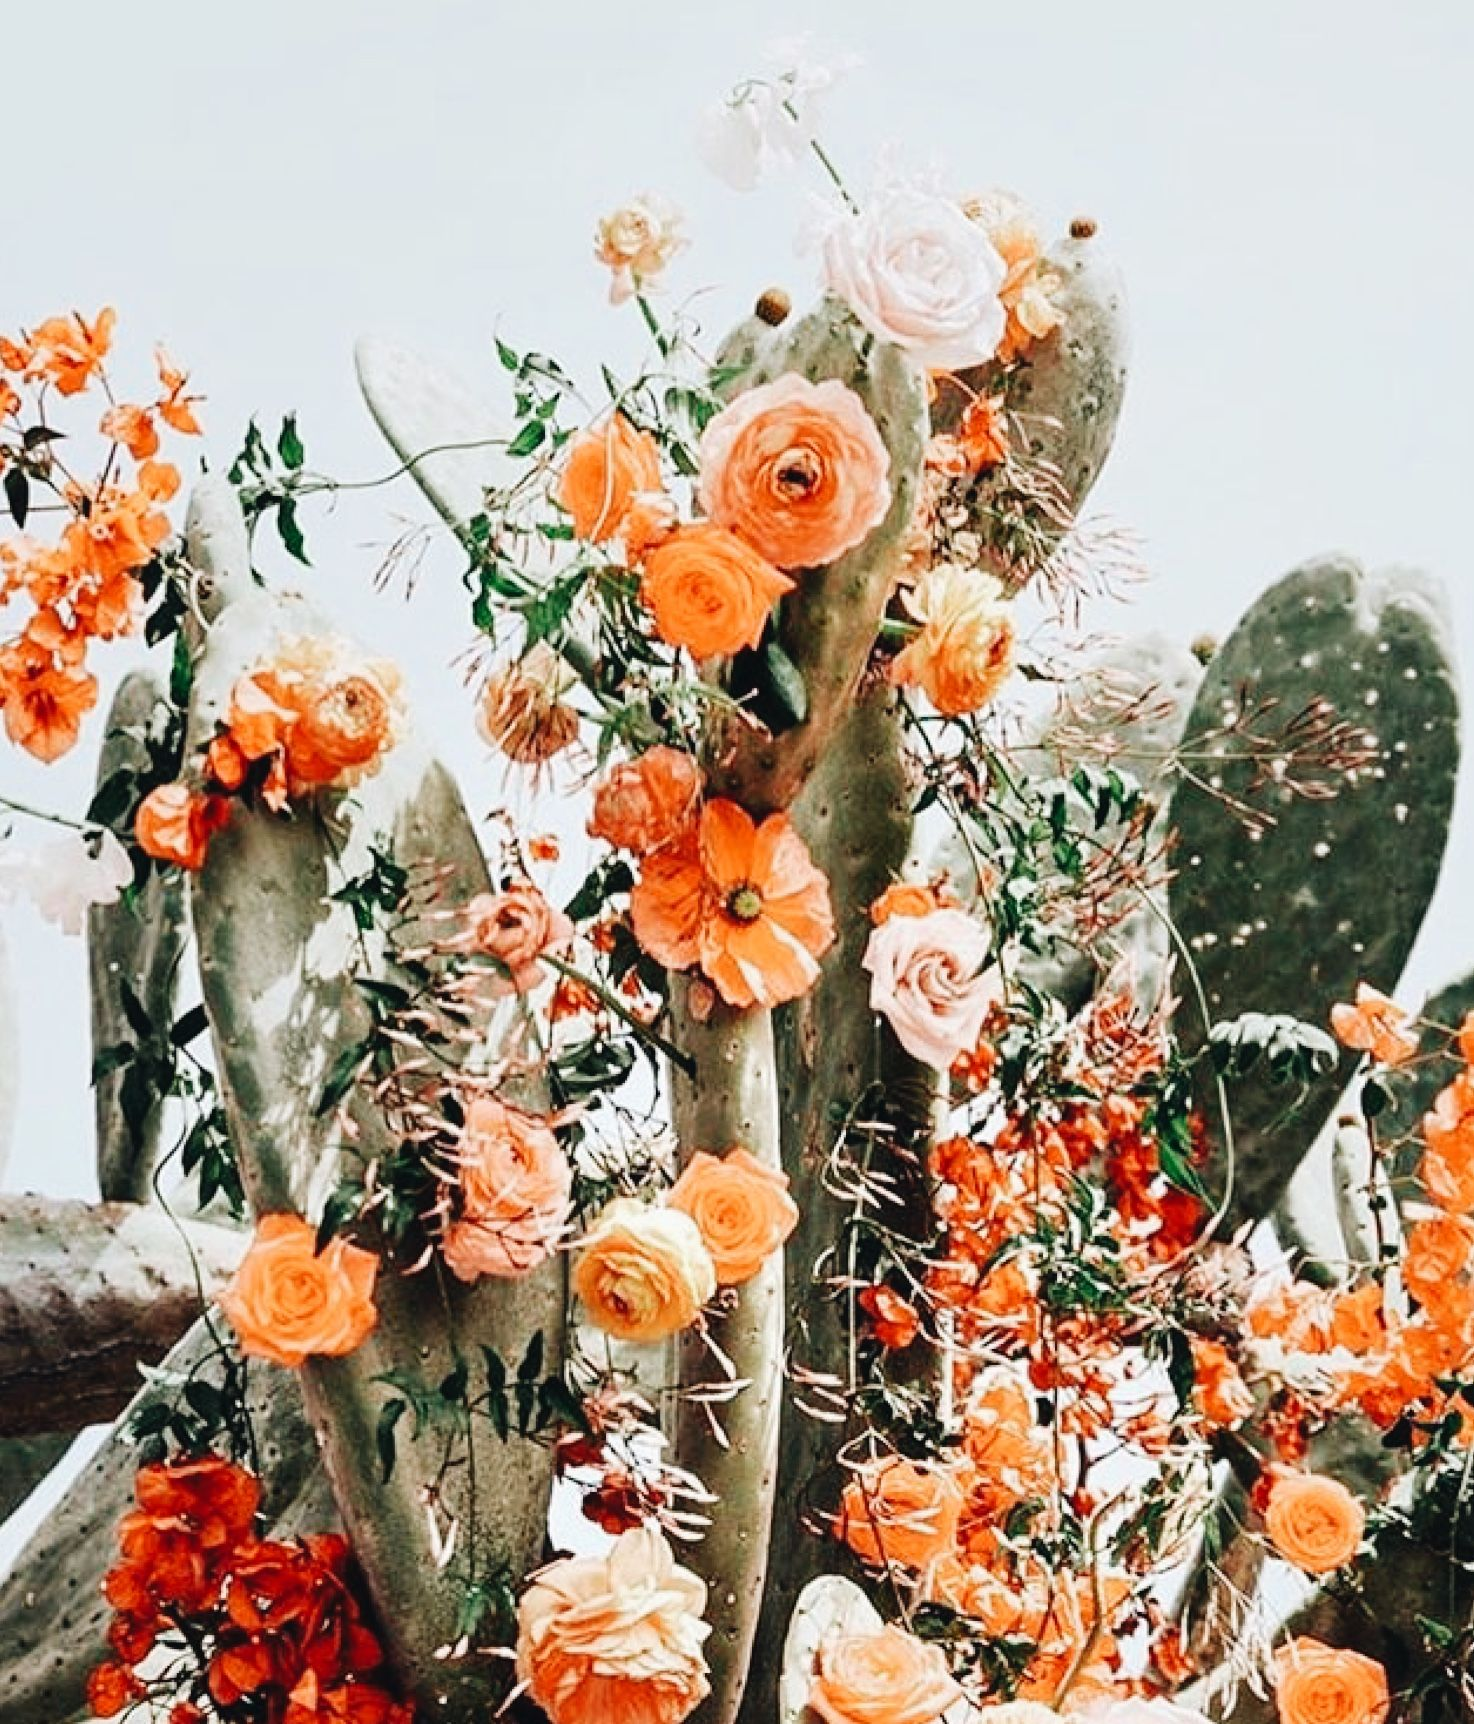 Pin by maddy on f l o w e r s pinterest plants flowers and flora